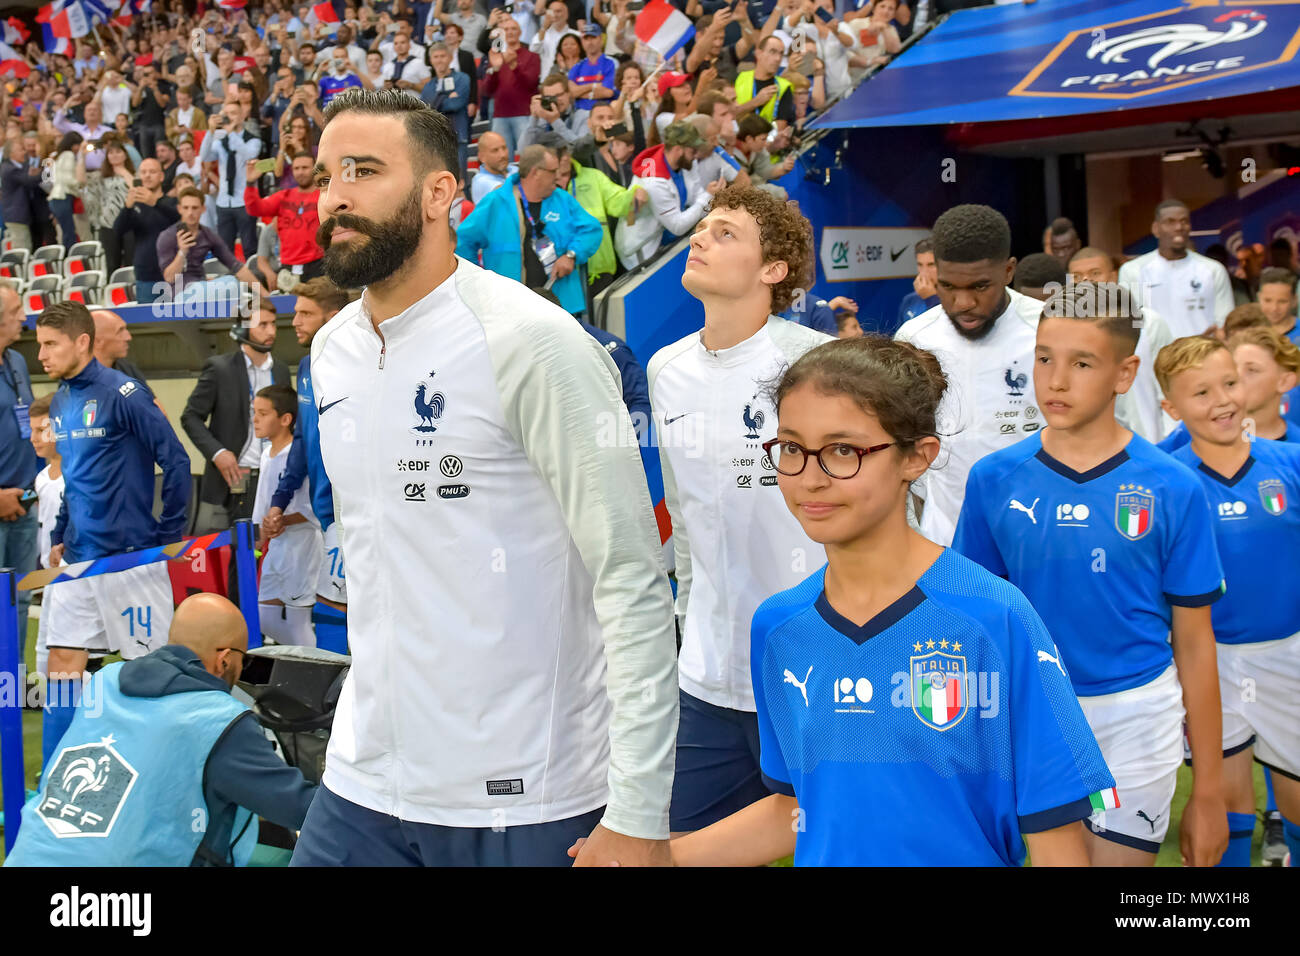 Nice, France. 1st June 2018. Soccer Football - International Friendly - France vs Italy - Allianz Riviera, Nice, France - June 1, 2018 France's Adil Rami and a mascot before the match Credit: BTWImages Sport/Alamy Live News - Stock Image